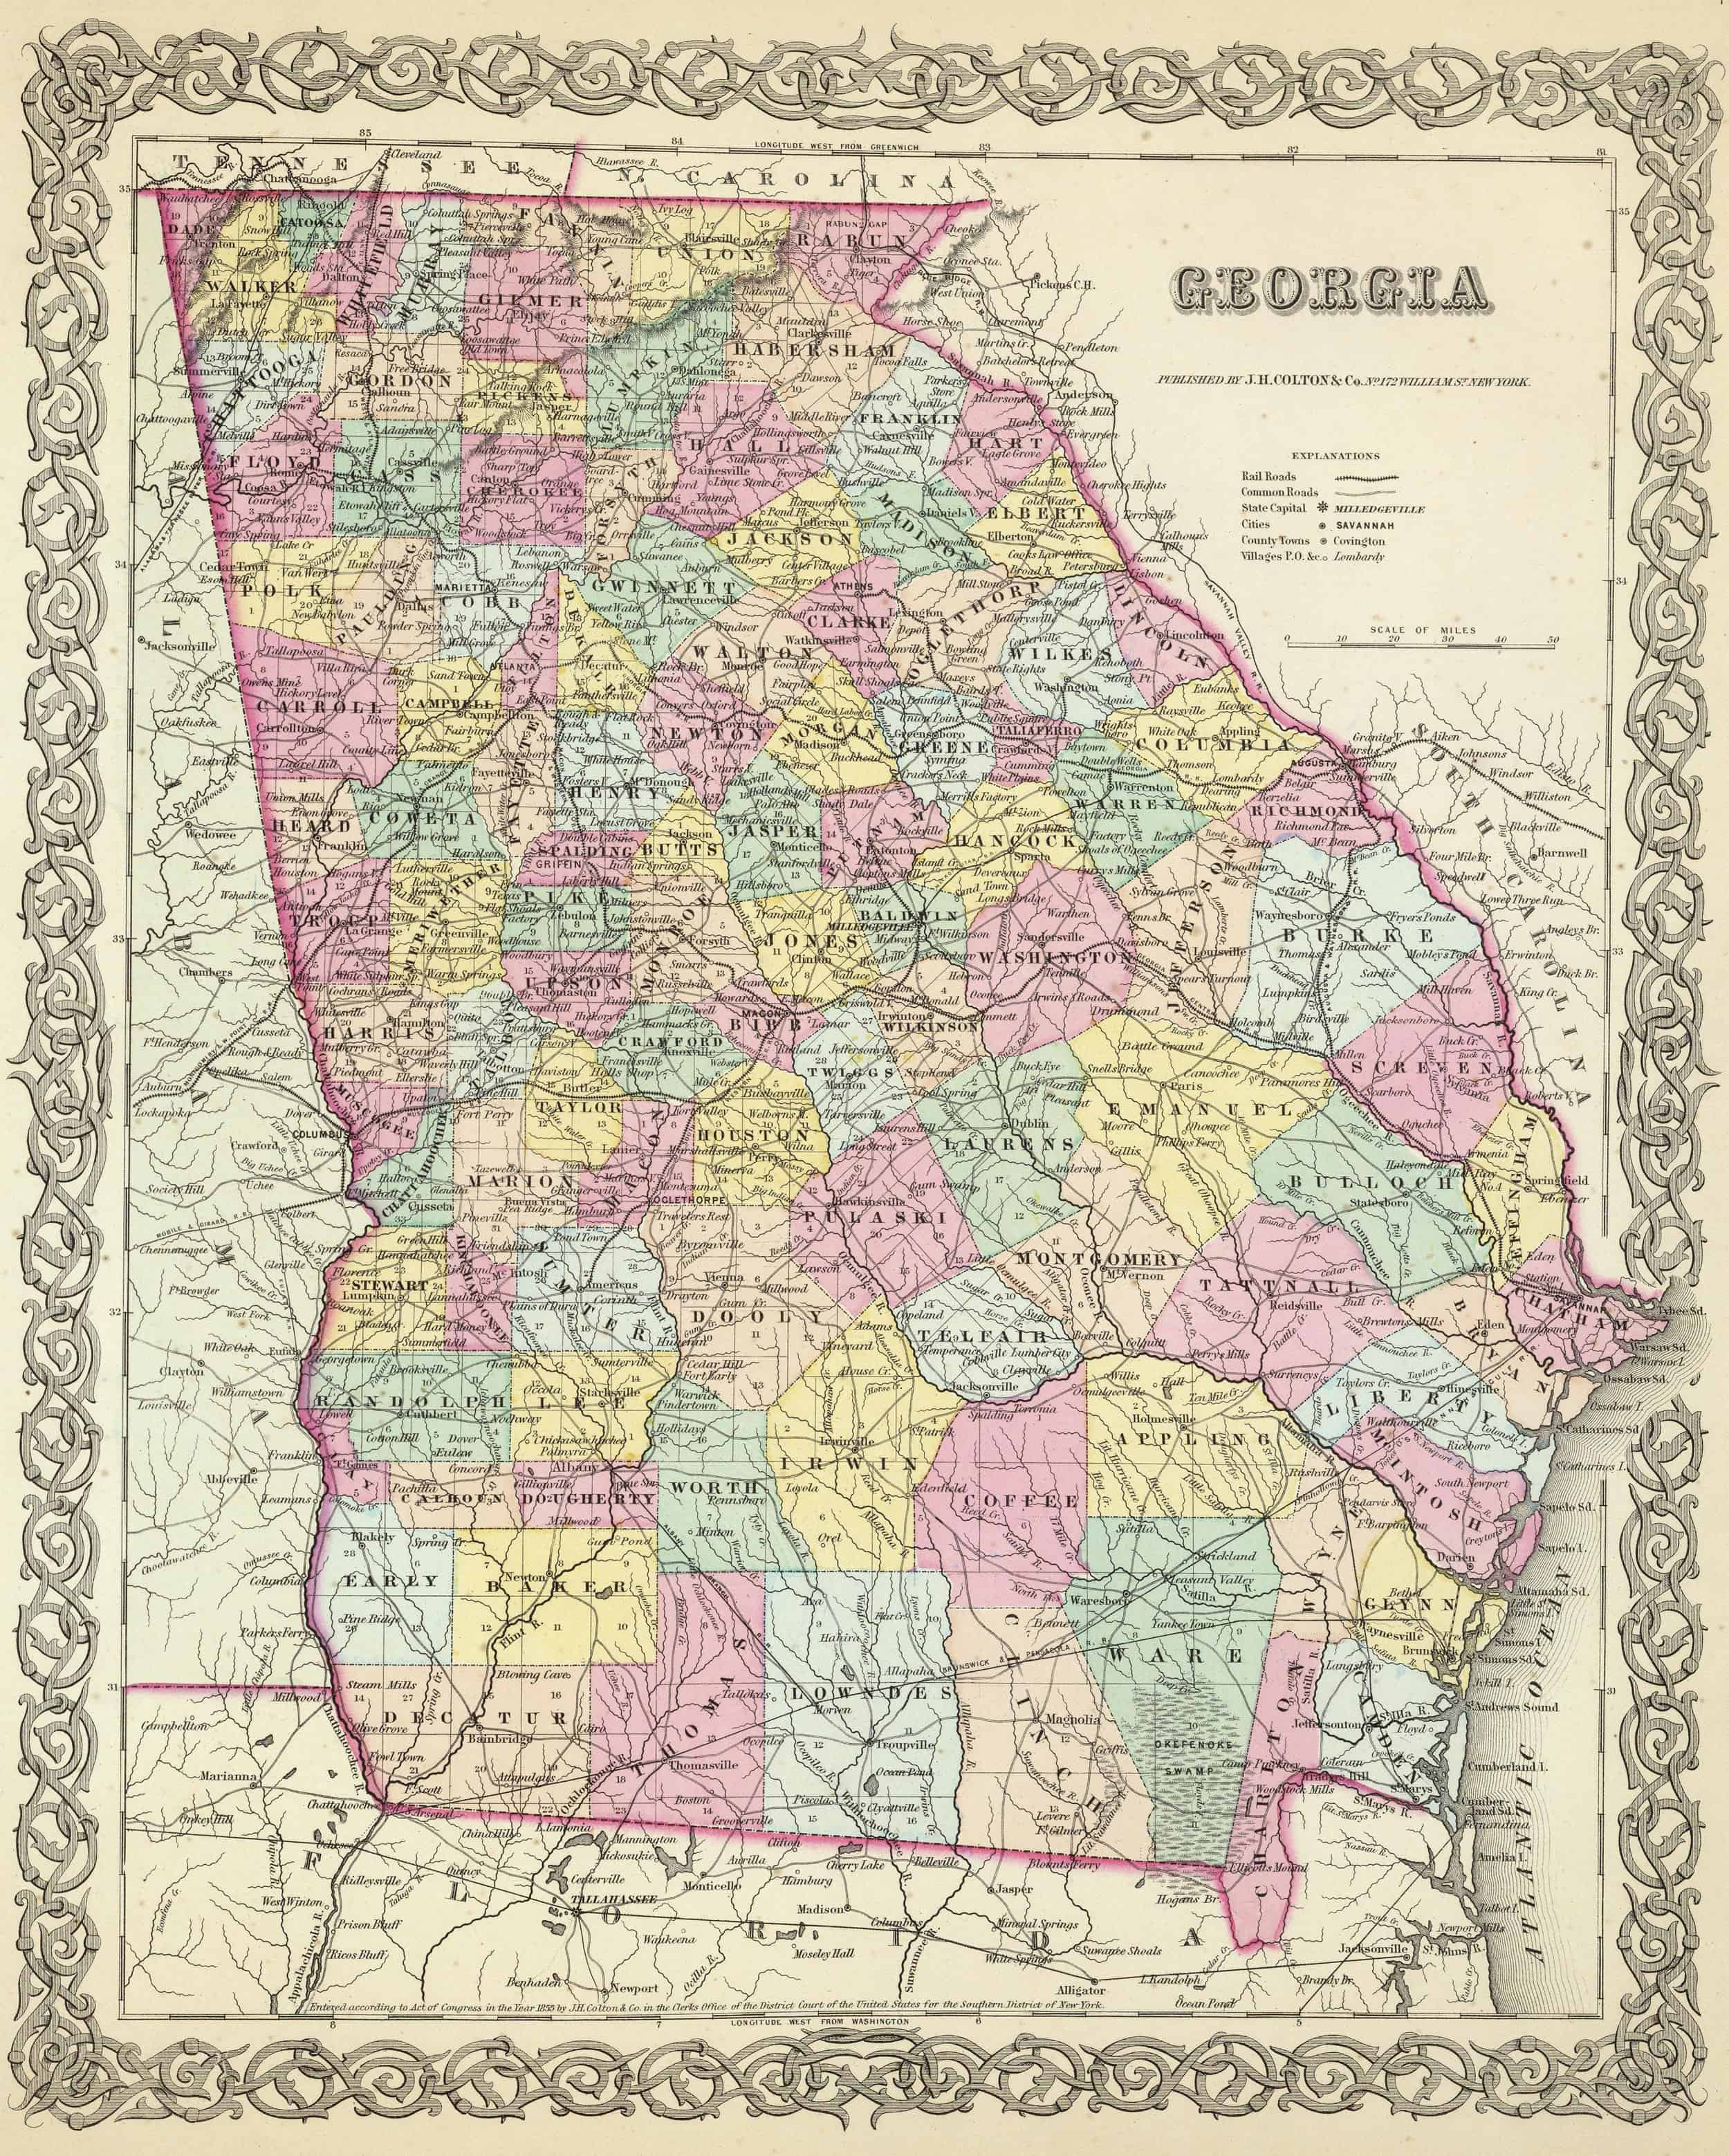 Old Historical City, County and State Maps of Georgia on georgia regional commissions map, georgia counties map printable, georgia middle east map, georgia county map, map of georgia counties, georgia political map, georgia northeastern railroad map, atlanta georgia counties, georgia on the map, georgia south carolina railroad map, georgia big buck counties, georgia map of islands off florida, georgia zip code map printable, north ga counties, georgia russia on map, georgia map towns, georgia state map, georgia world map, georgia country traditional people, state of georgia counties,